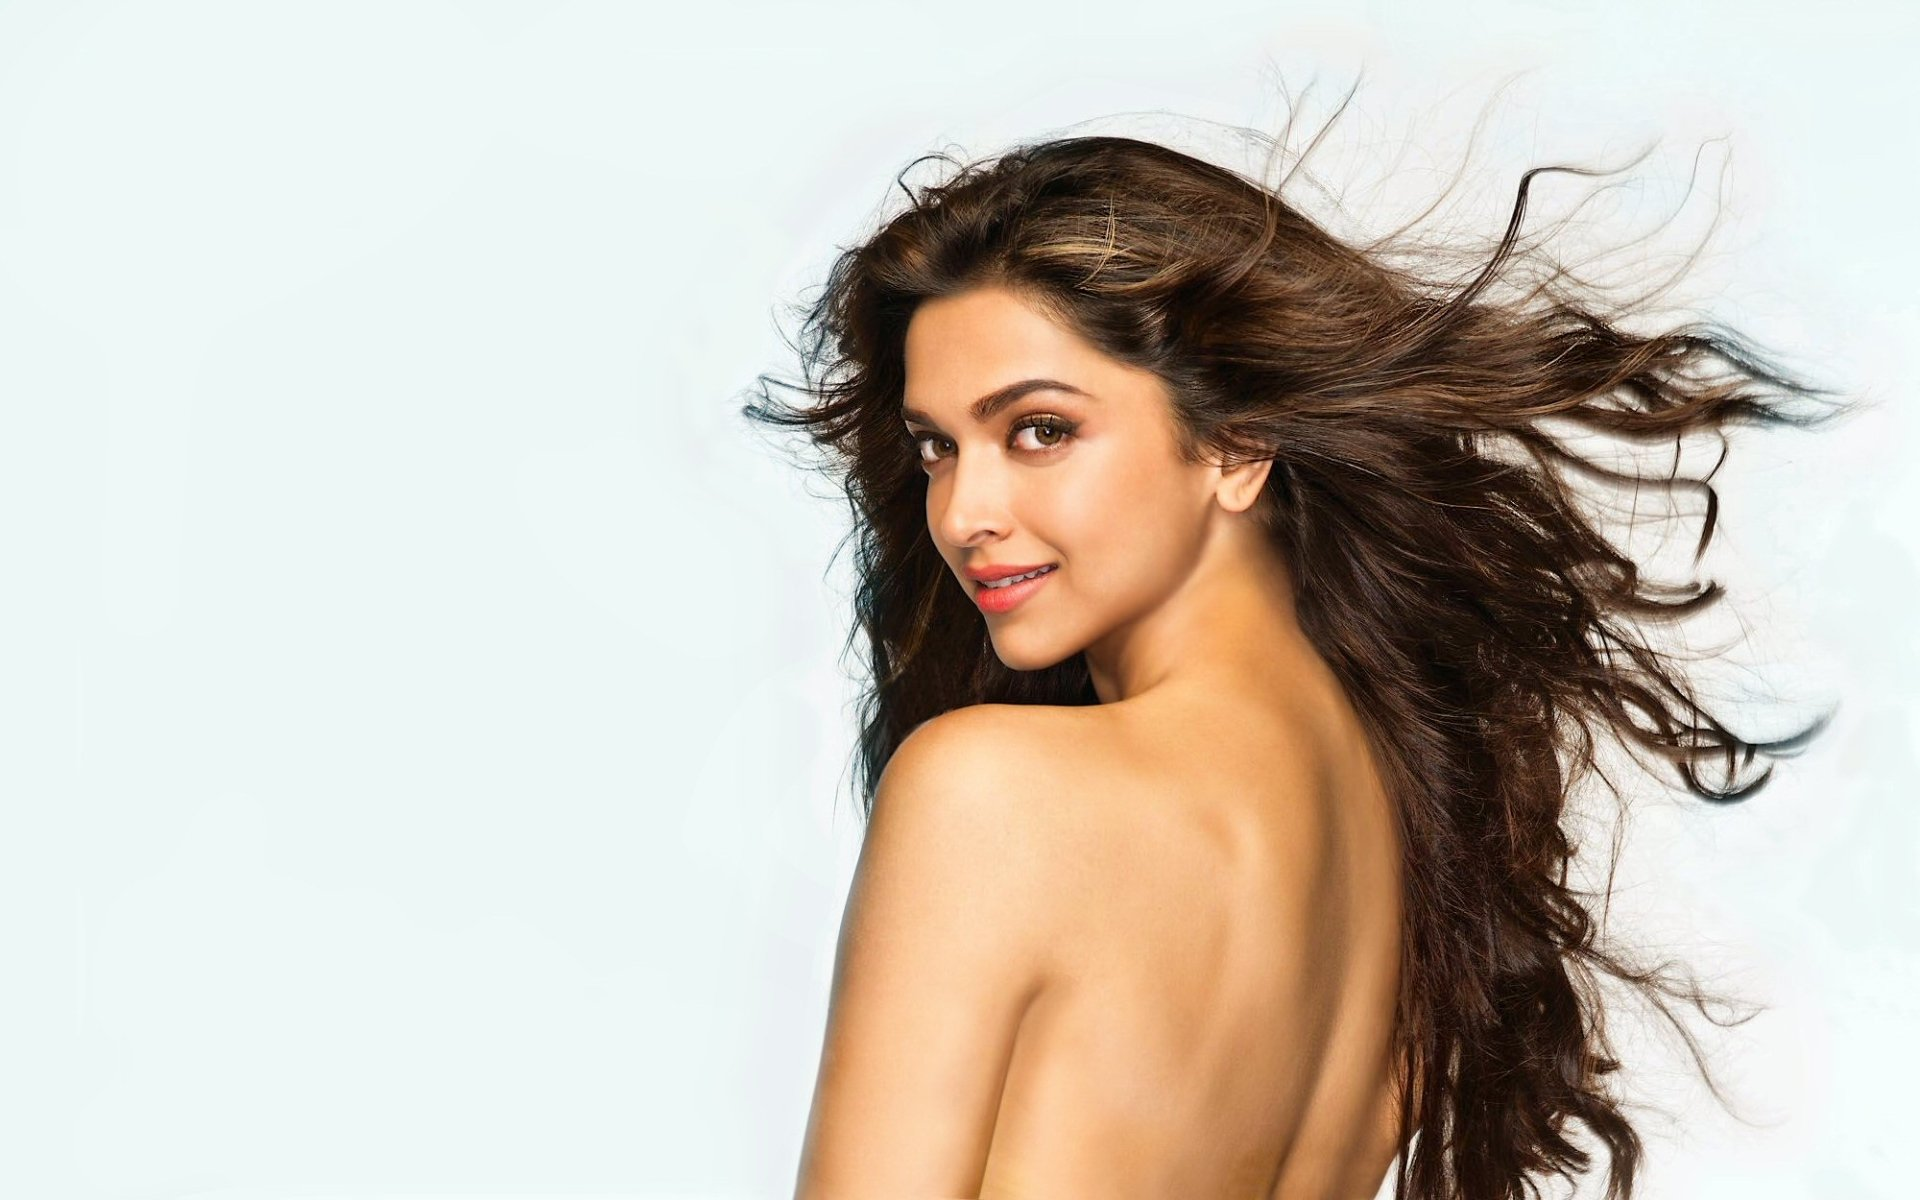 Celebrity - Deepika Padukone  Brunette Bollywood Hair Model Wallpaper